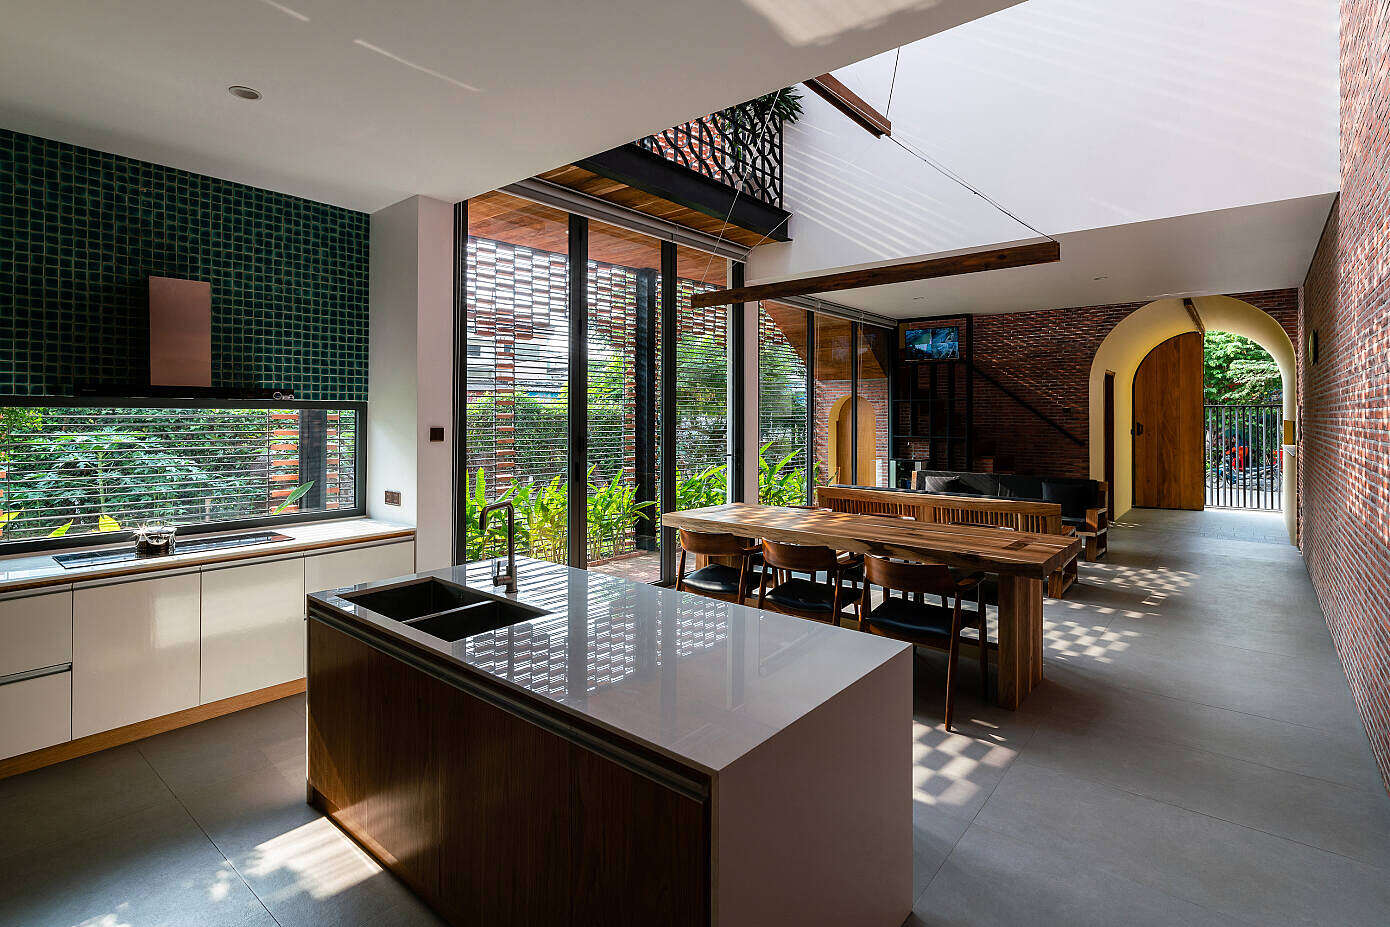 OldMeetsNew House by Block Architects